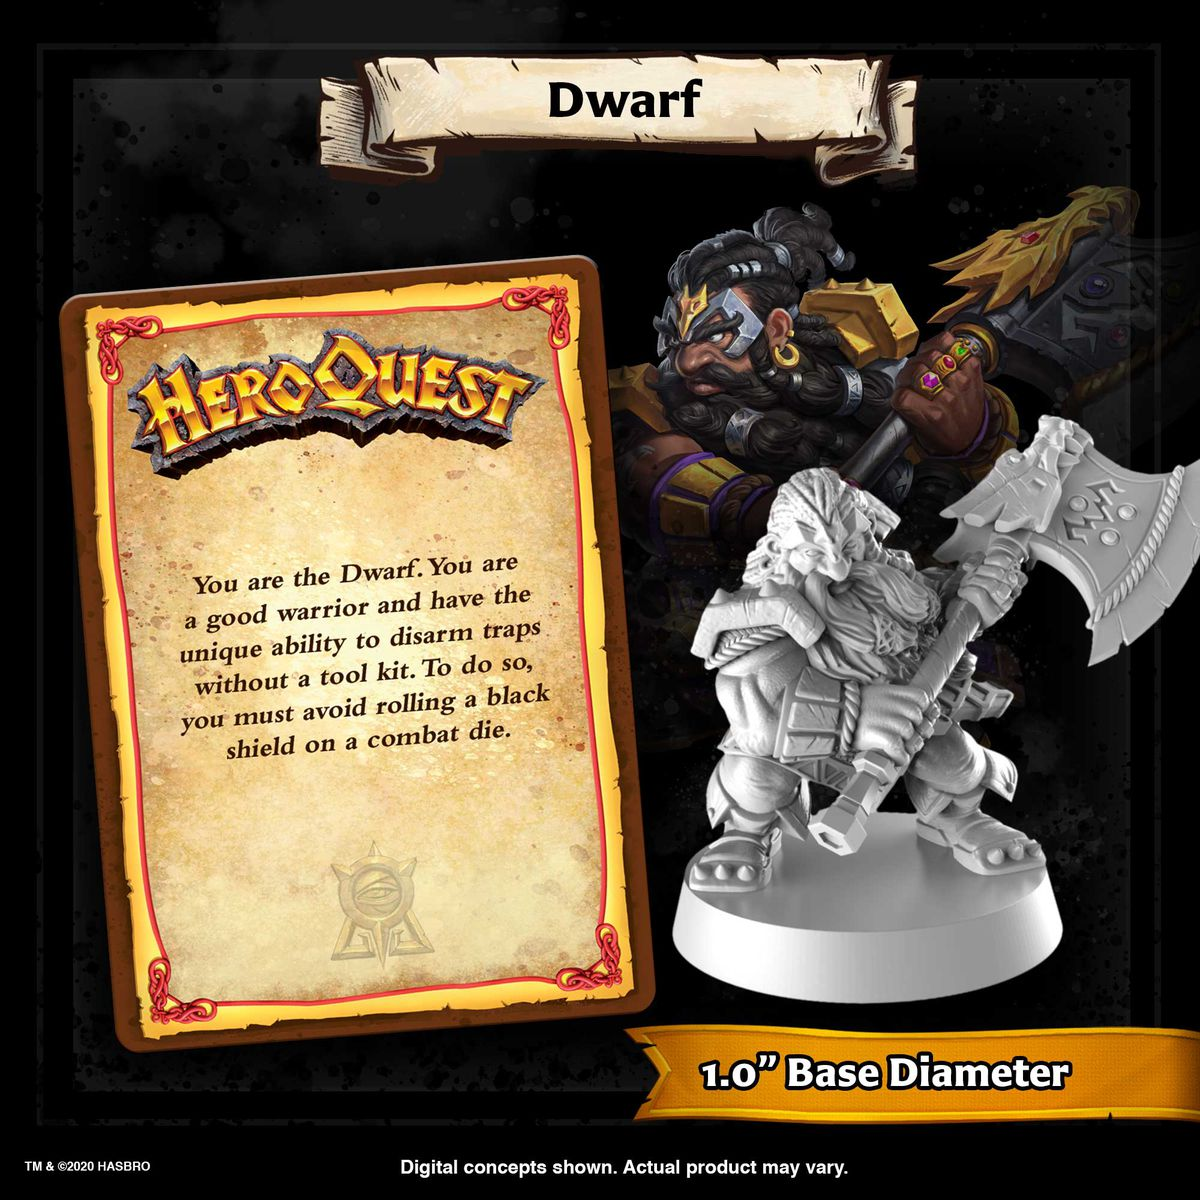 The character card for the dwarf includes a much more dynamic pose, with the dwarf rearing back to swing a single-bladed axe.